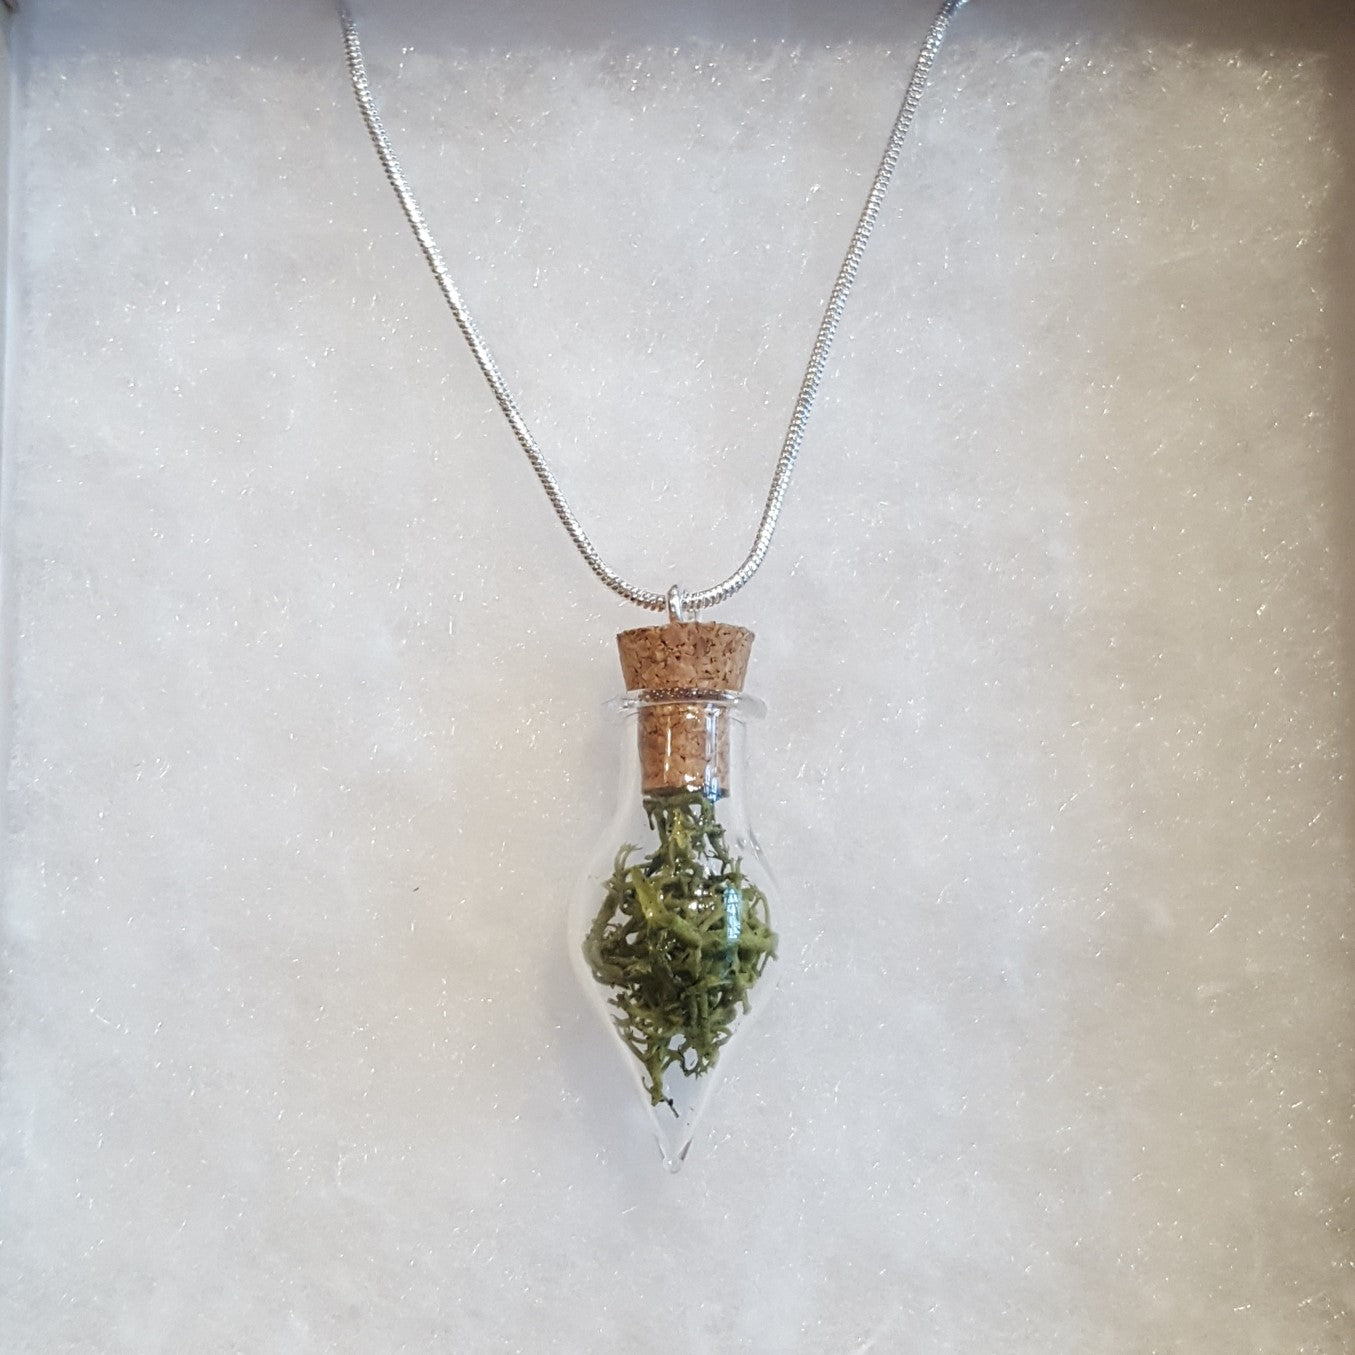 Moss Terrarium Necklace Sheffield Makers Hunters Bar